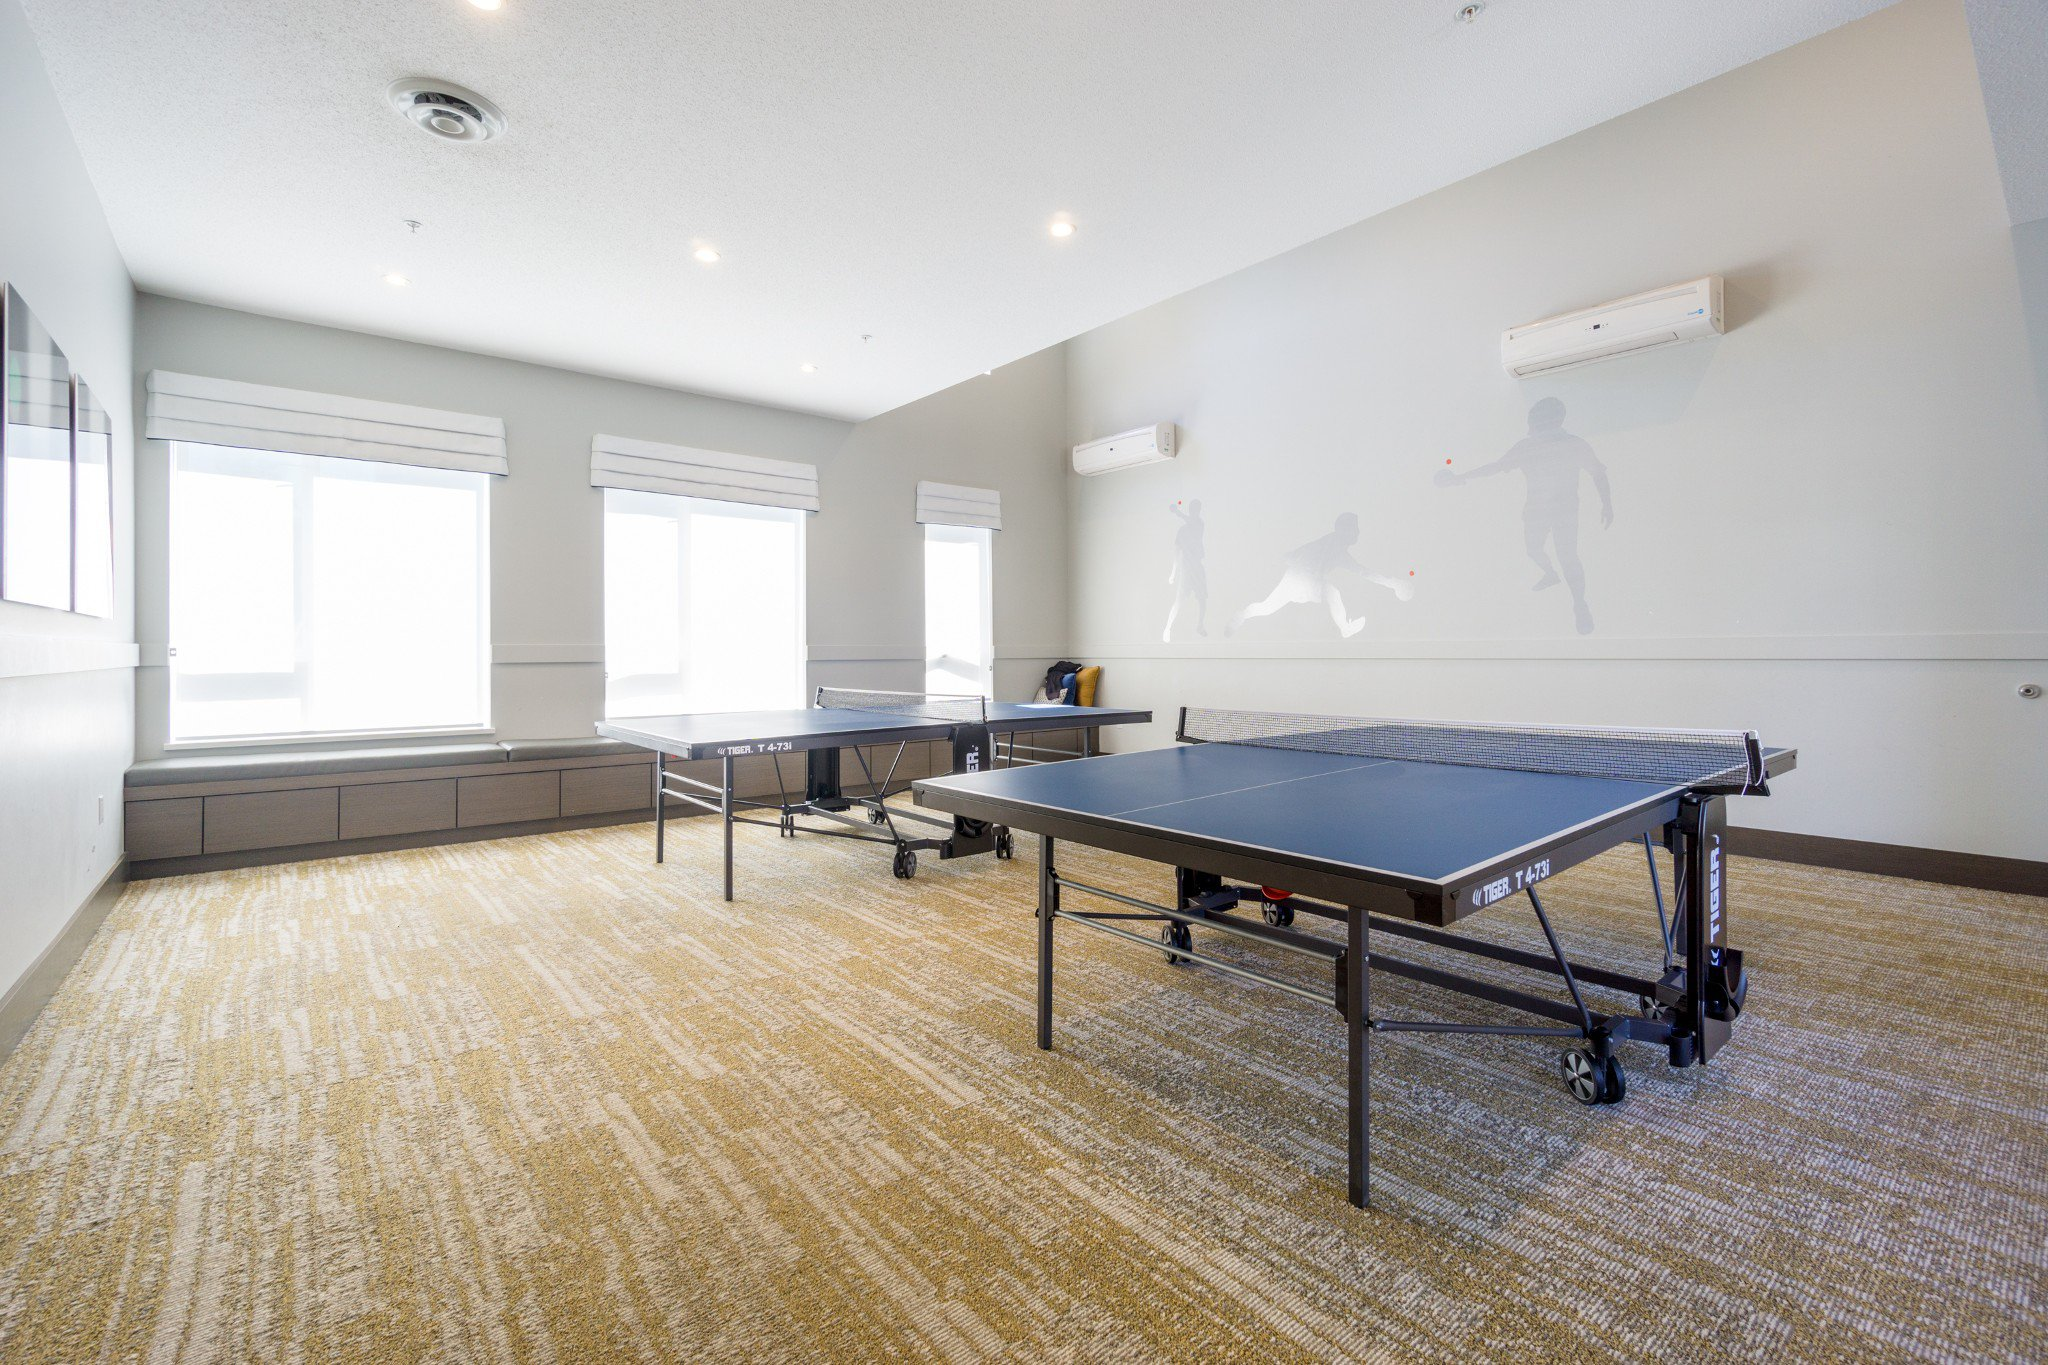 """Photo 33: Photos: 402 9311 ALEXANDRA Road in Richmond: West Cambie Condo for sale in """"ALEXANDRA COURT"""" : MLS®# R2266613"""